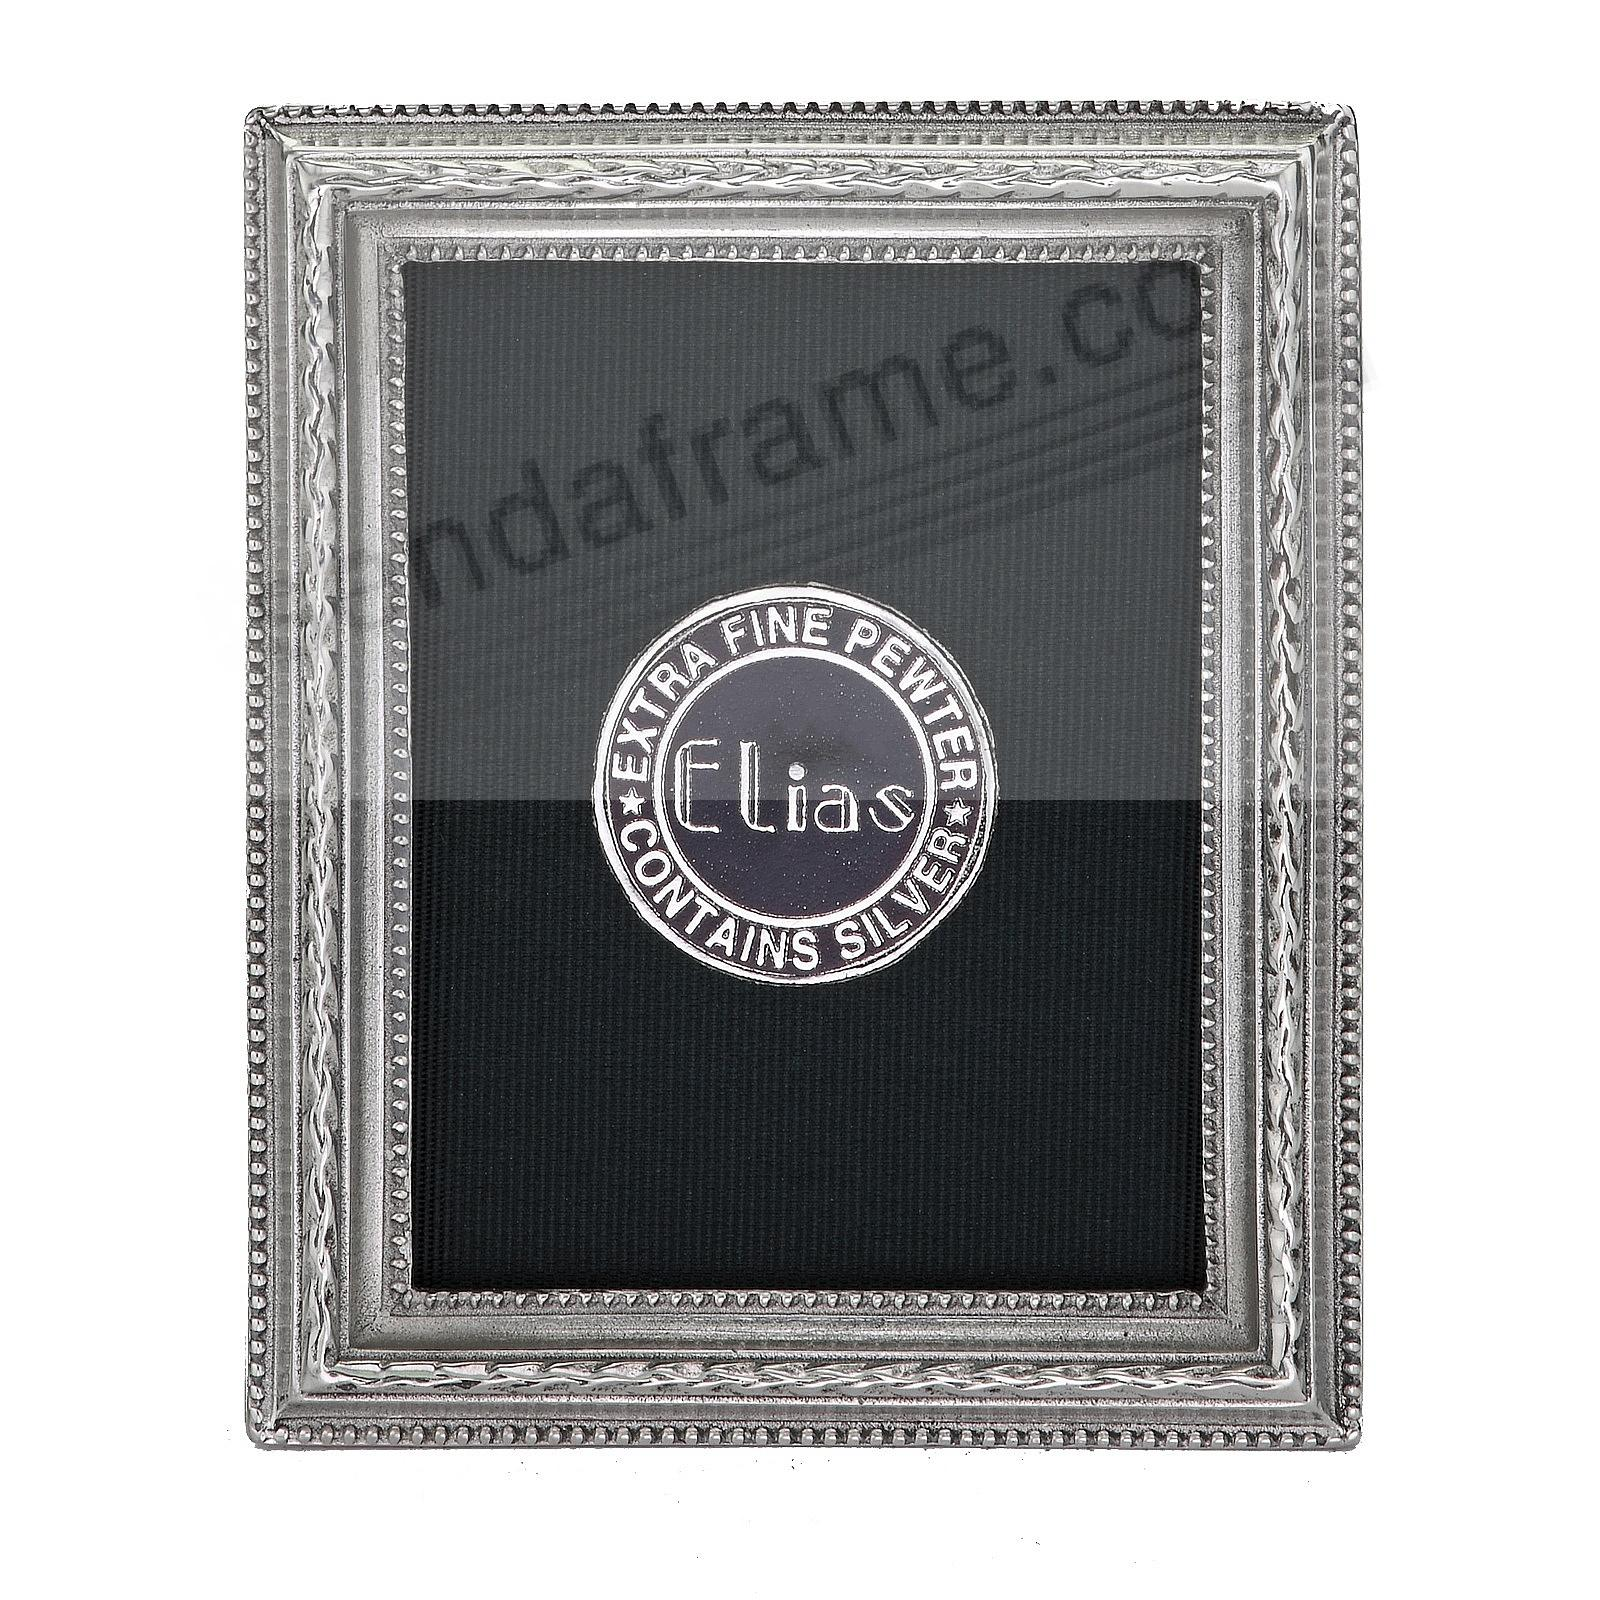 CAPSTONE Fine Silvered Pewter Mini Frame 1-3/4x2-1/8 by Elias Artmetal®